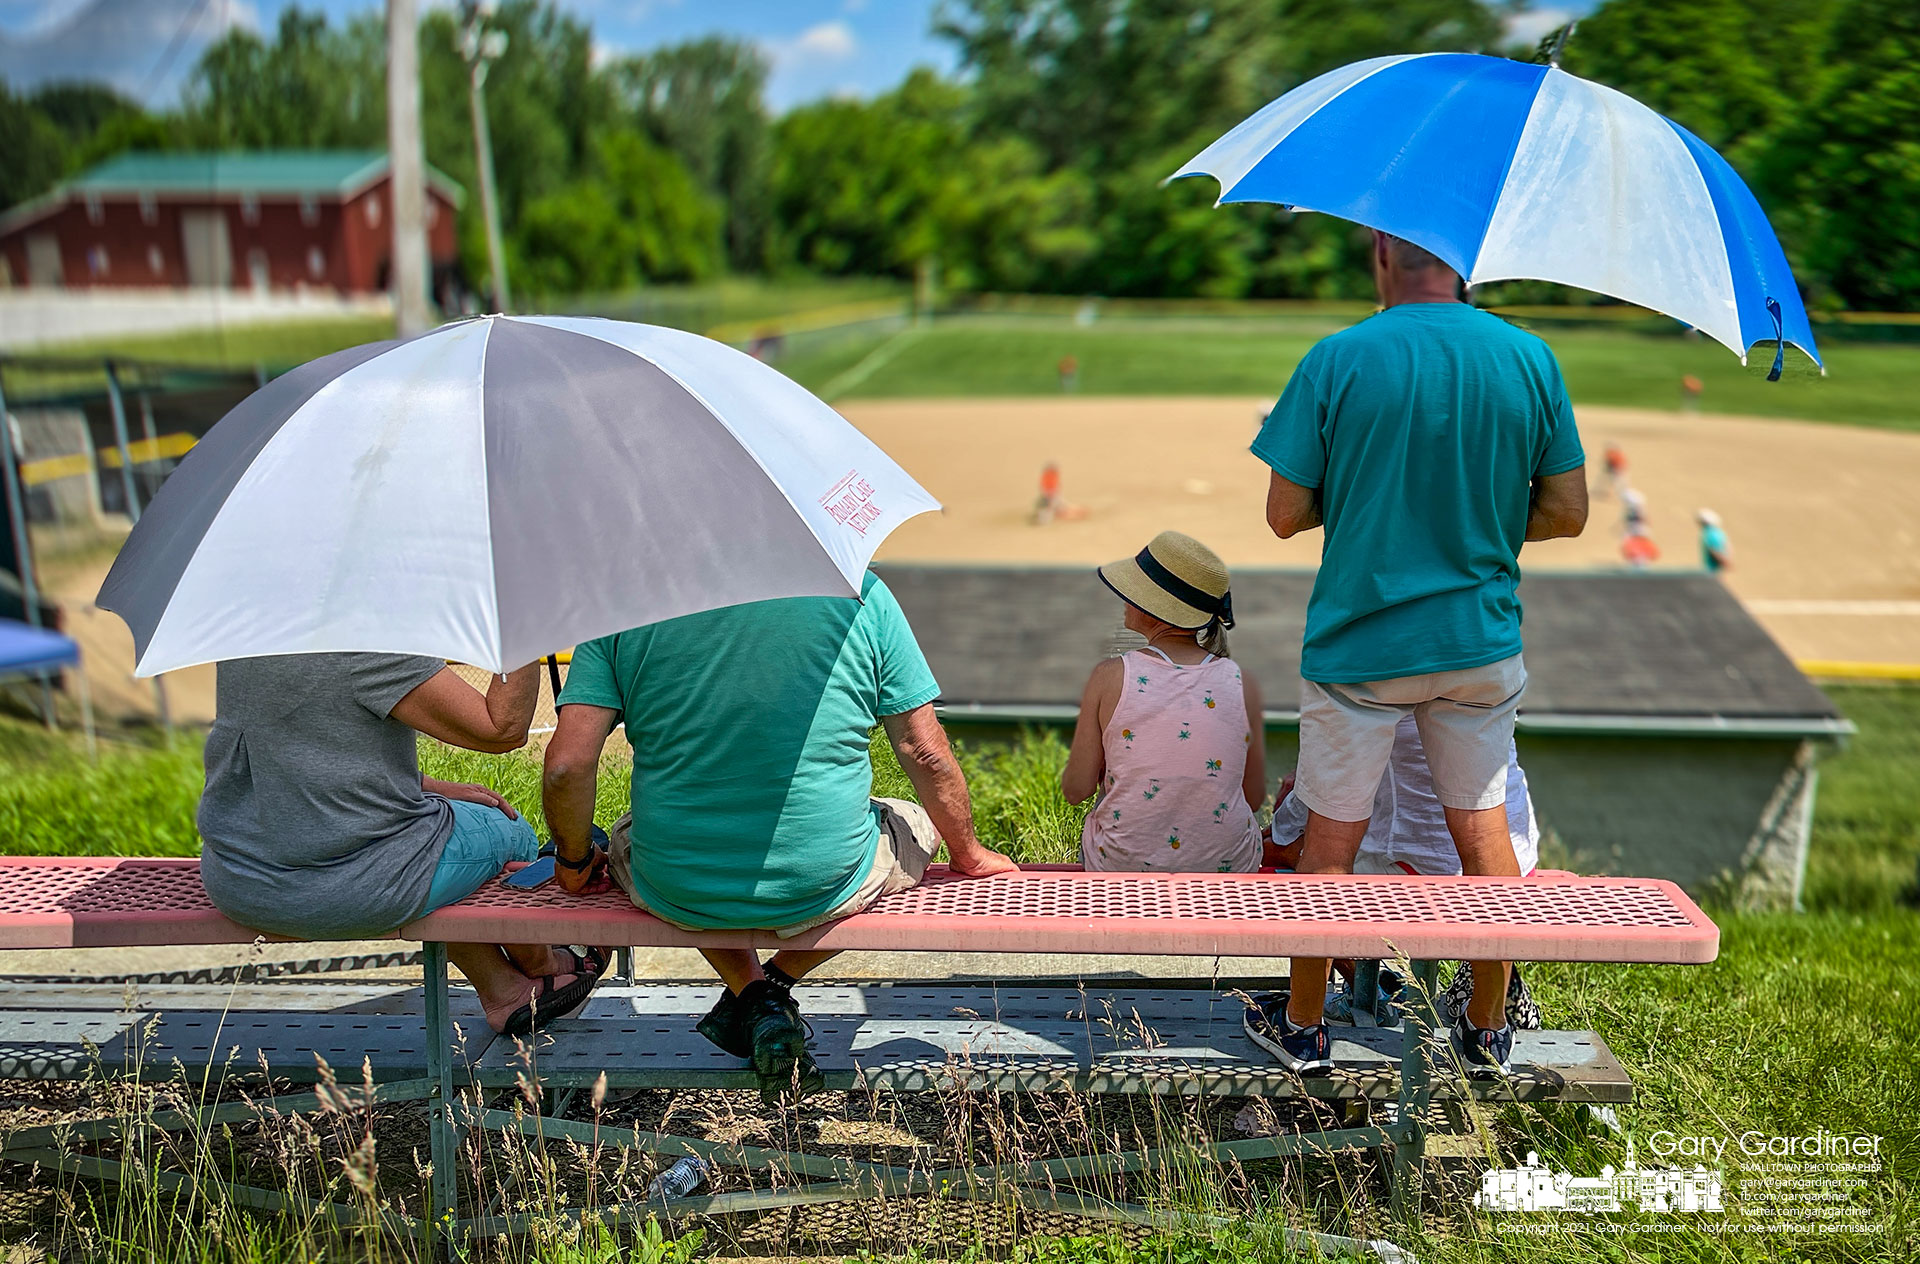 Baseball parents watch their team's game from seats at the upper level of the ballfield in the bottomland along Big Walnut Creek in Galena, Ohio. My Final Photo for June 5, 2021.